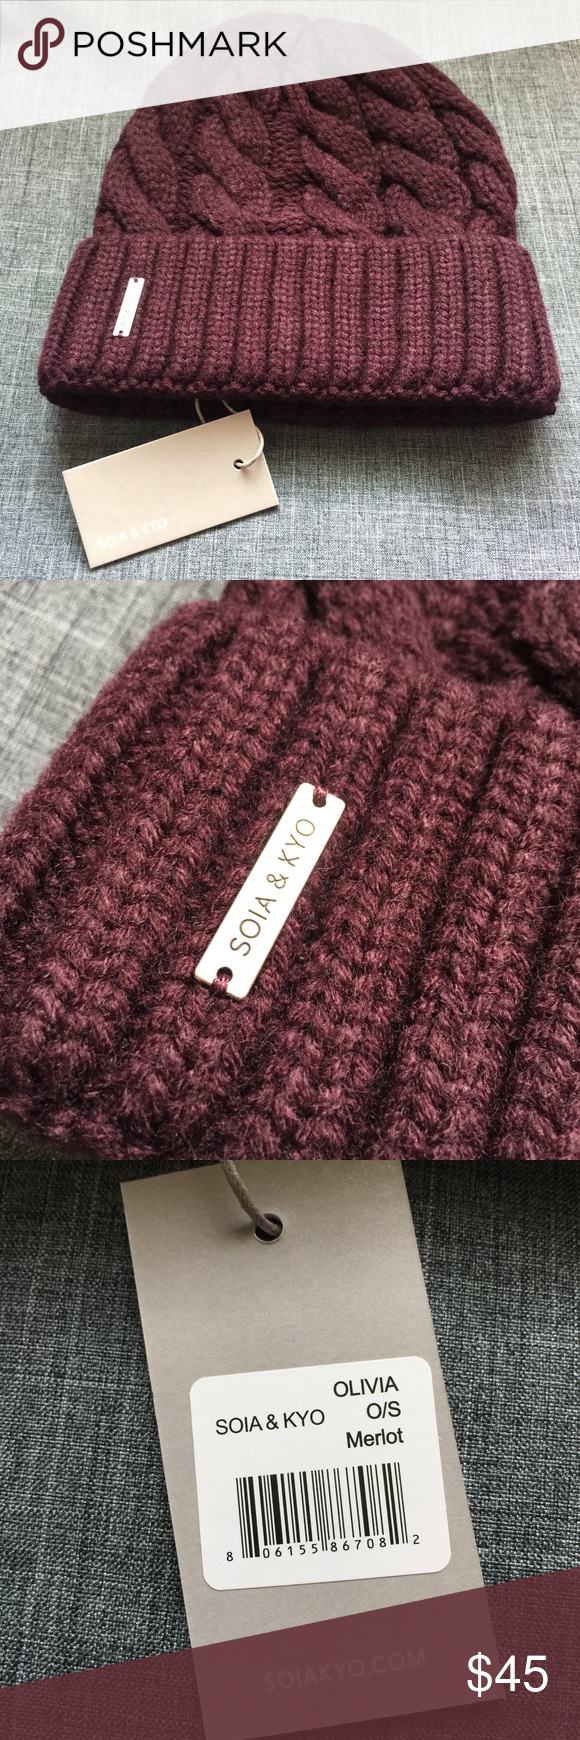 SOIA & KYO Knit Hat in Merlot Beautiful deep burgundy knit beanie by SOIA & Kyo. Brand new, with tags, excellent condition. Smoke/Pet free home. Soia & Kyo Accessories Hats